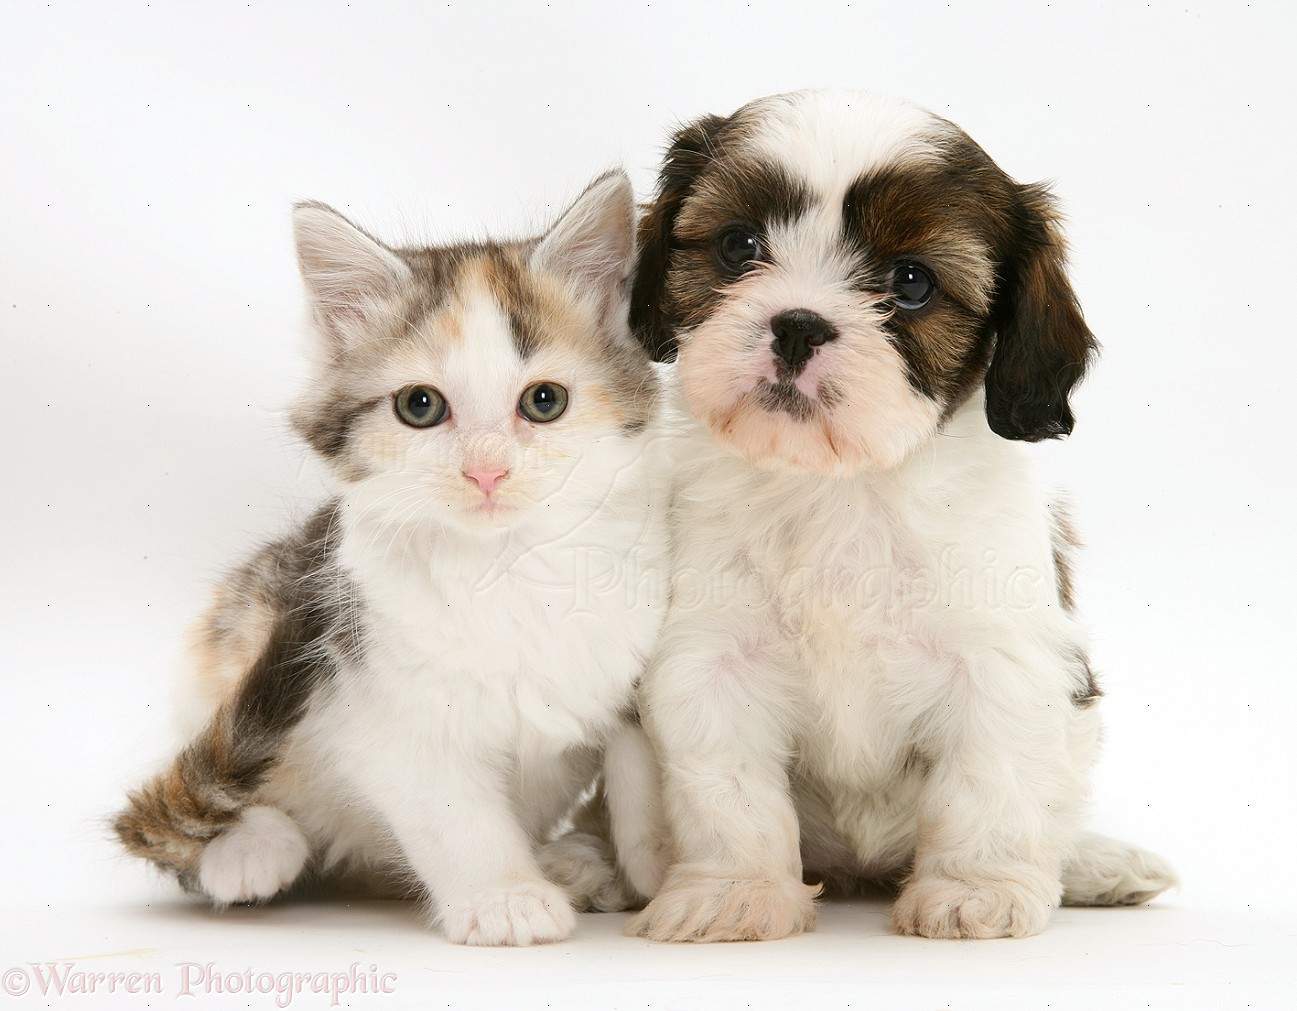 Cute Photos Of Dogs And Cats Together